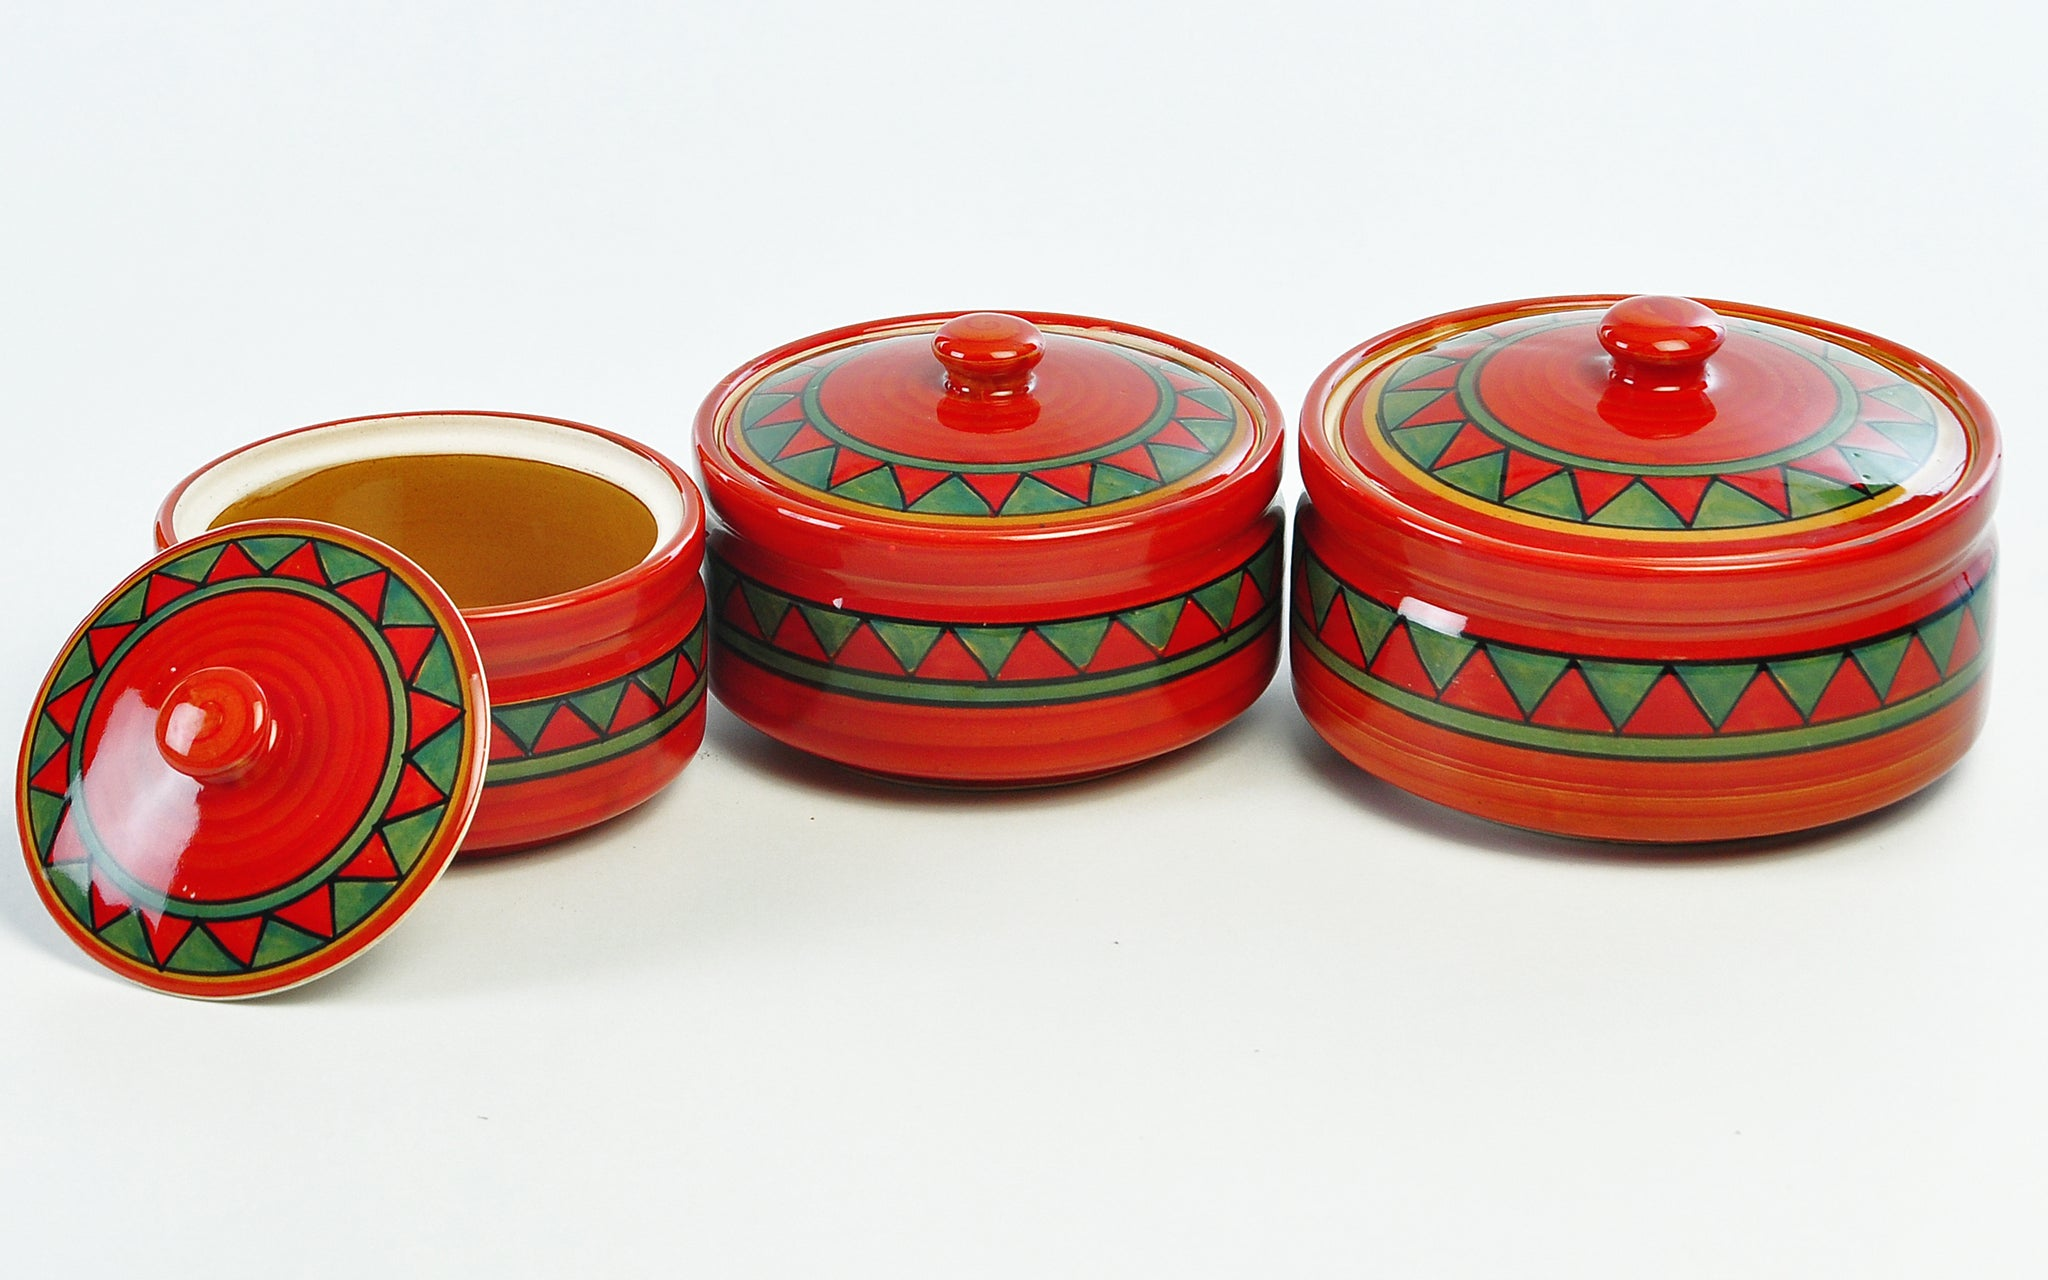 trian-red-n-green-large-serving-bowl-with-lid-dec5339